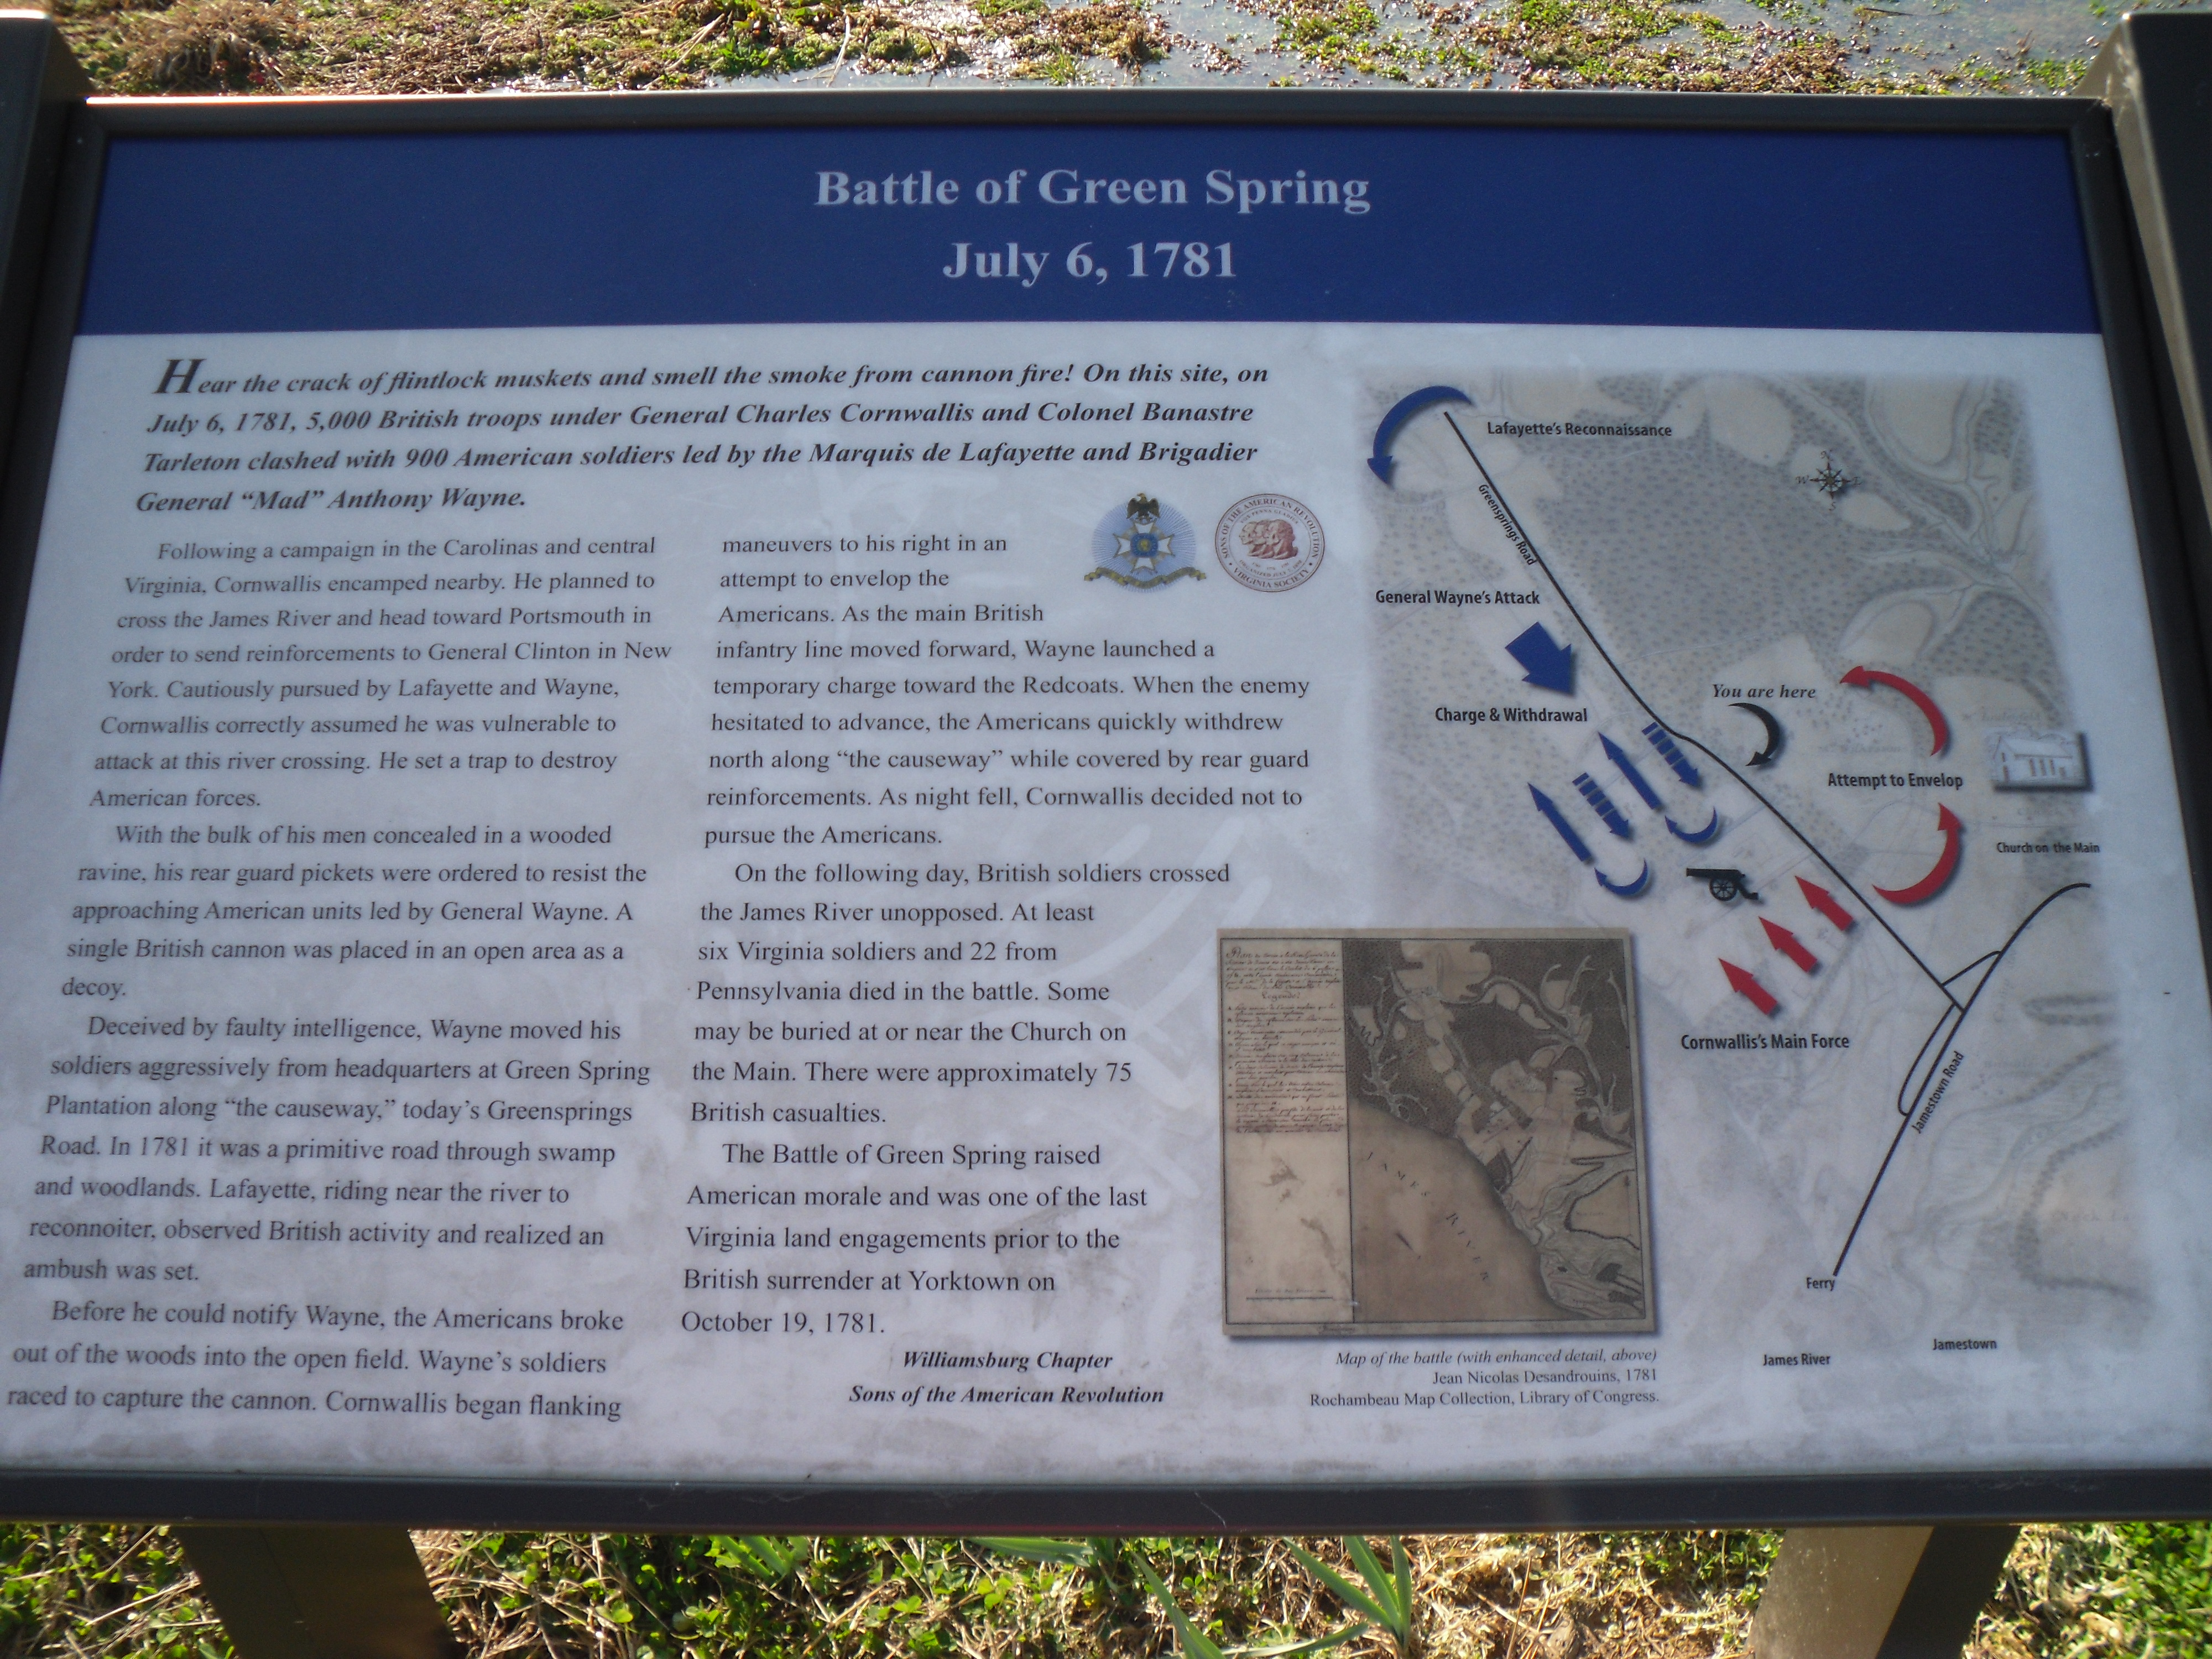 Informational placard at the site, courtesy of RevolutionaryWar.us (reproduced under Fair Use)